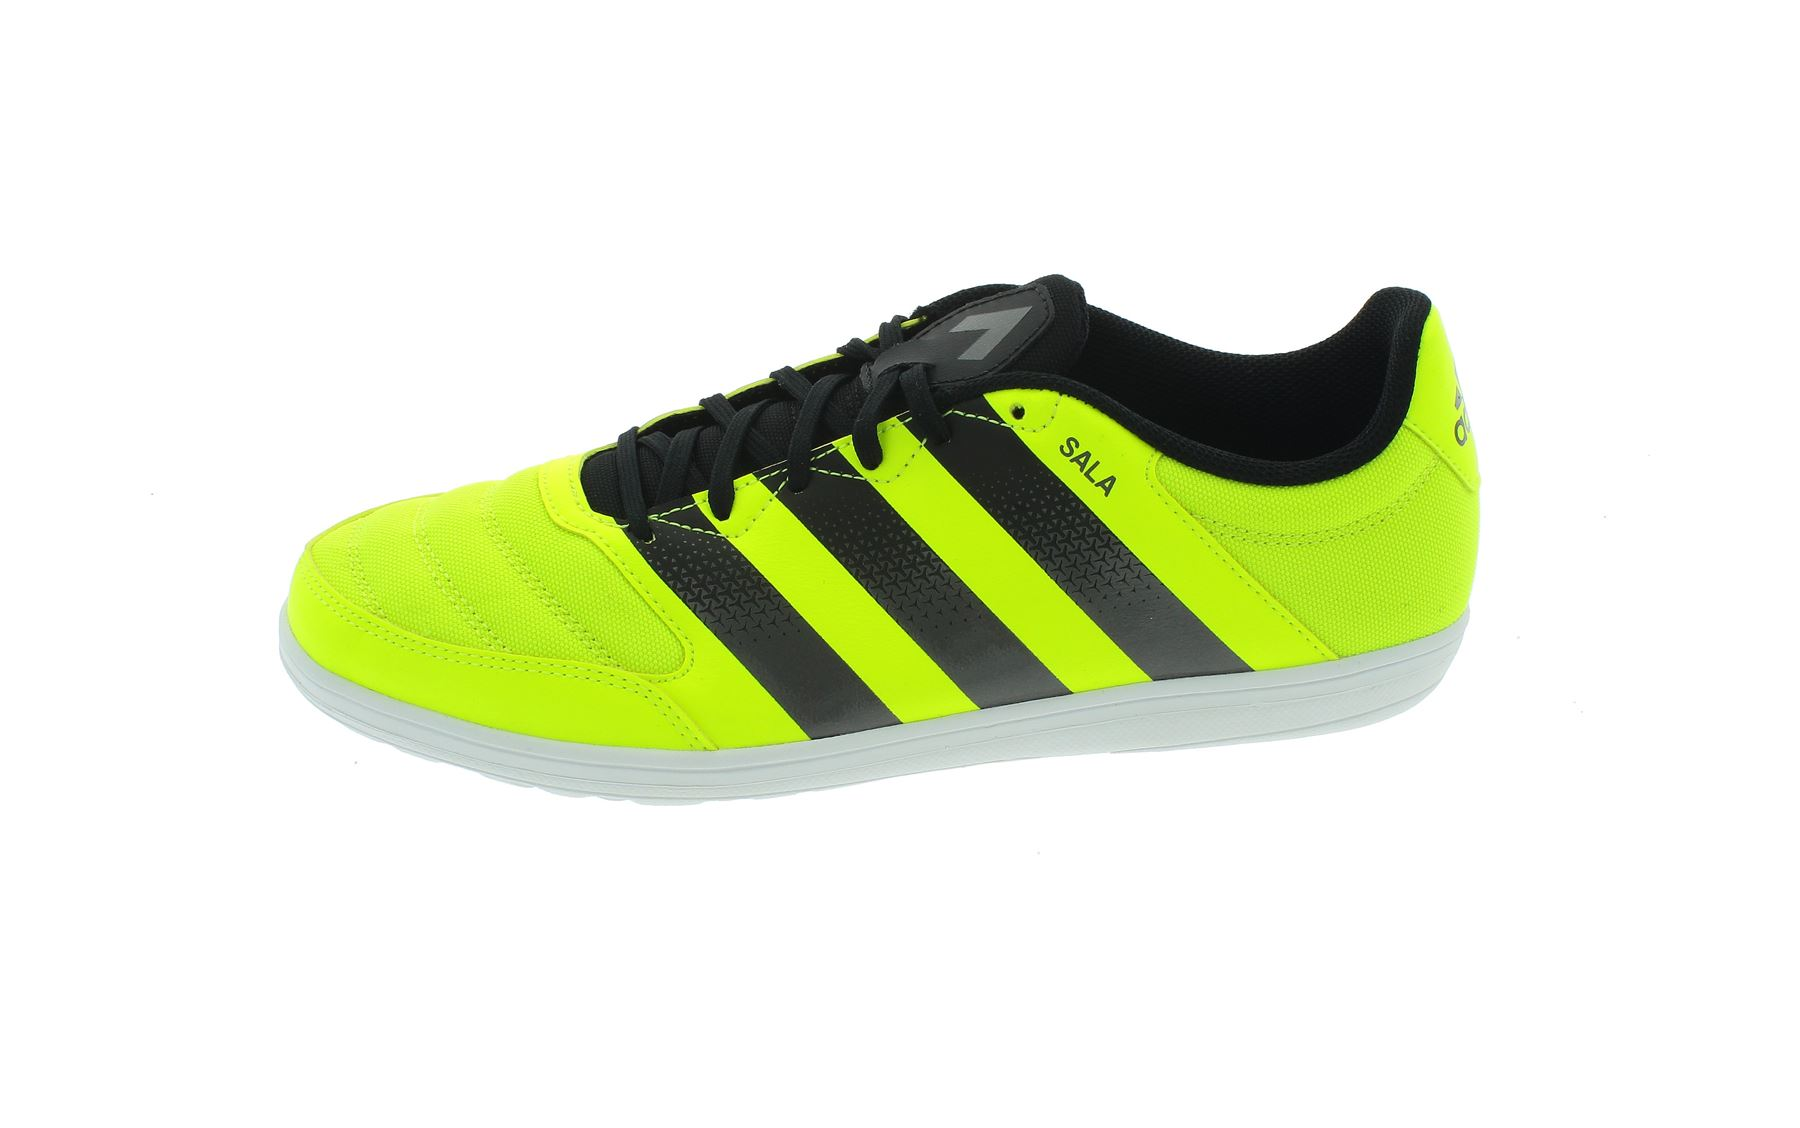 best service 20d32 39248 ... adidas Ace 16.4 Street Indoor Football Shoes Mens YellowBlack Soccer  Trainers ...